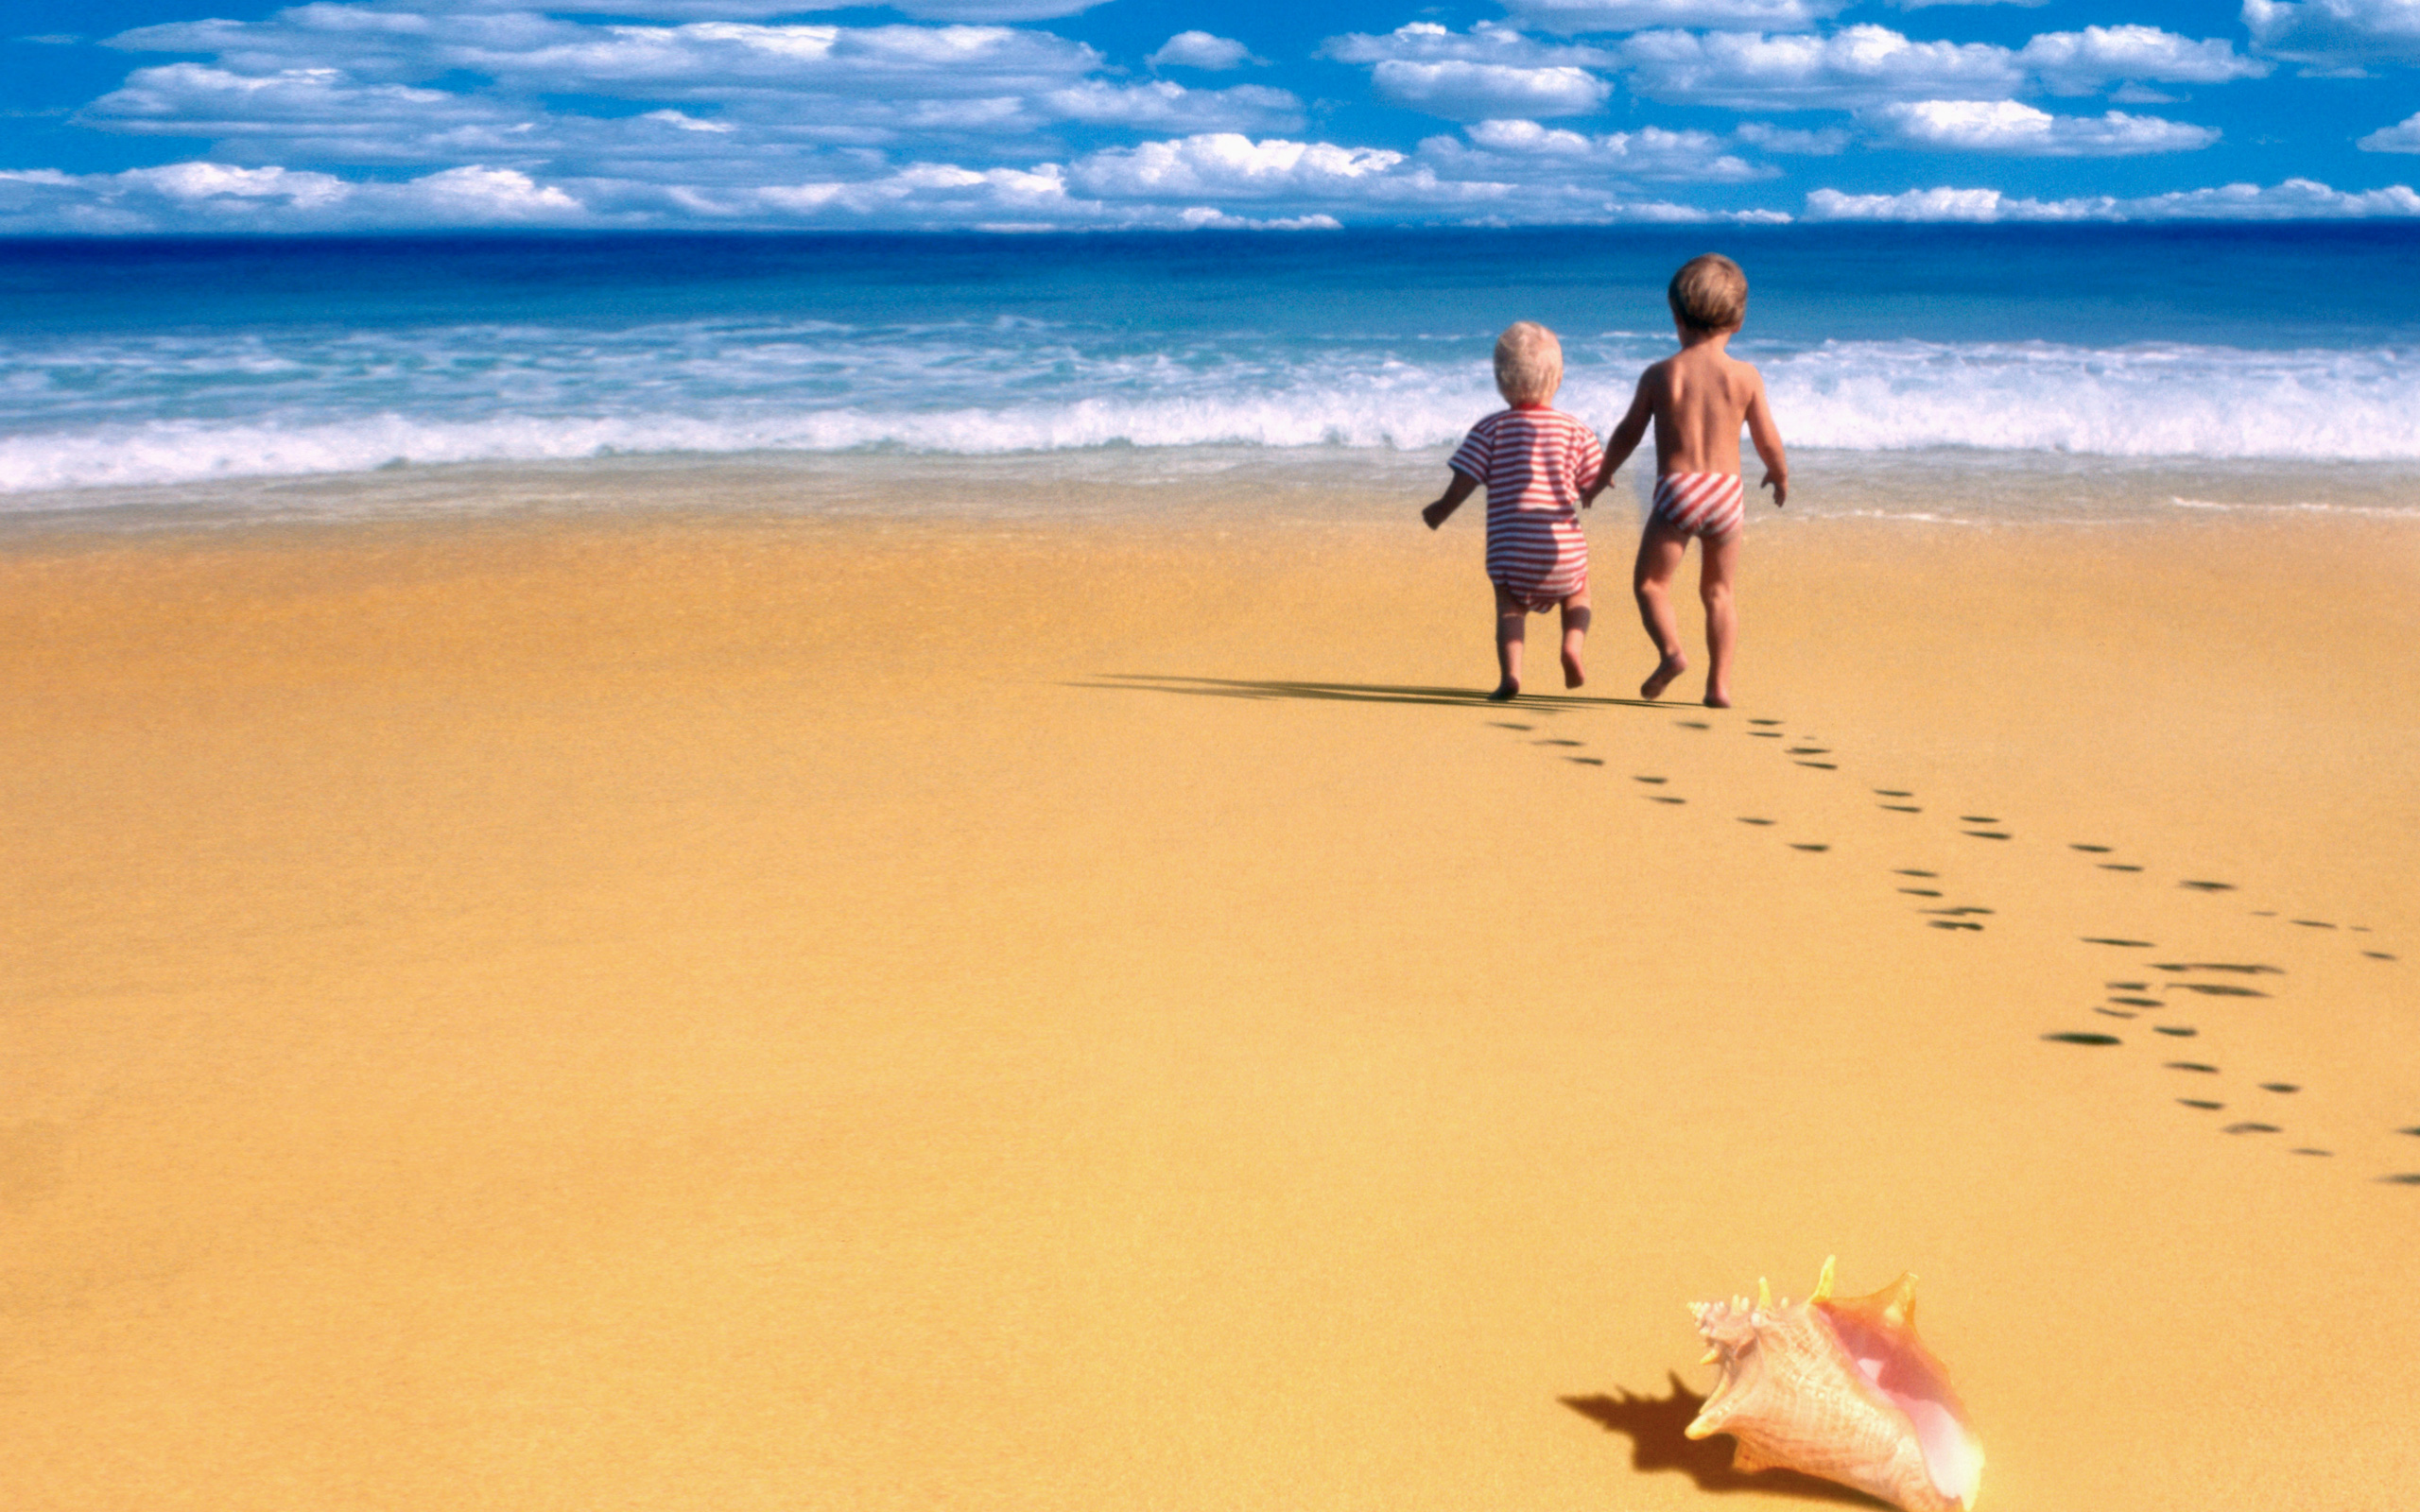 Children By The Seashore Wallpapers